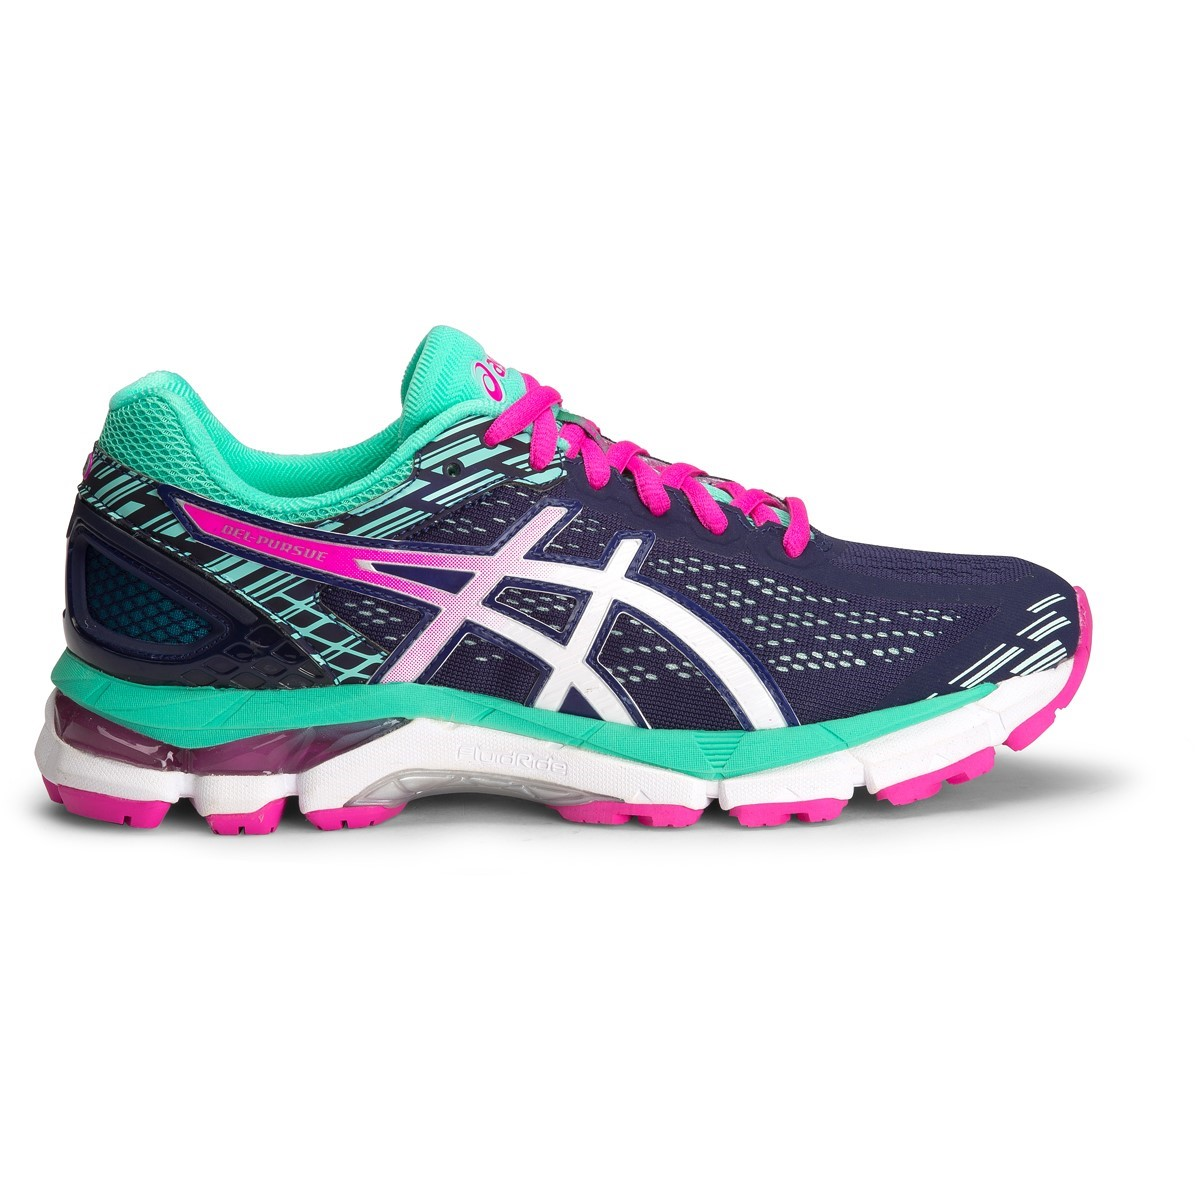 4fad559b9f2 Asics Gel Pursue 3 (D) - Womens Running Shoes - Indigo Blue/White ...